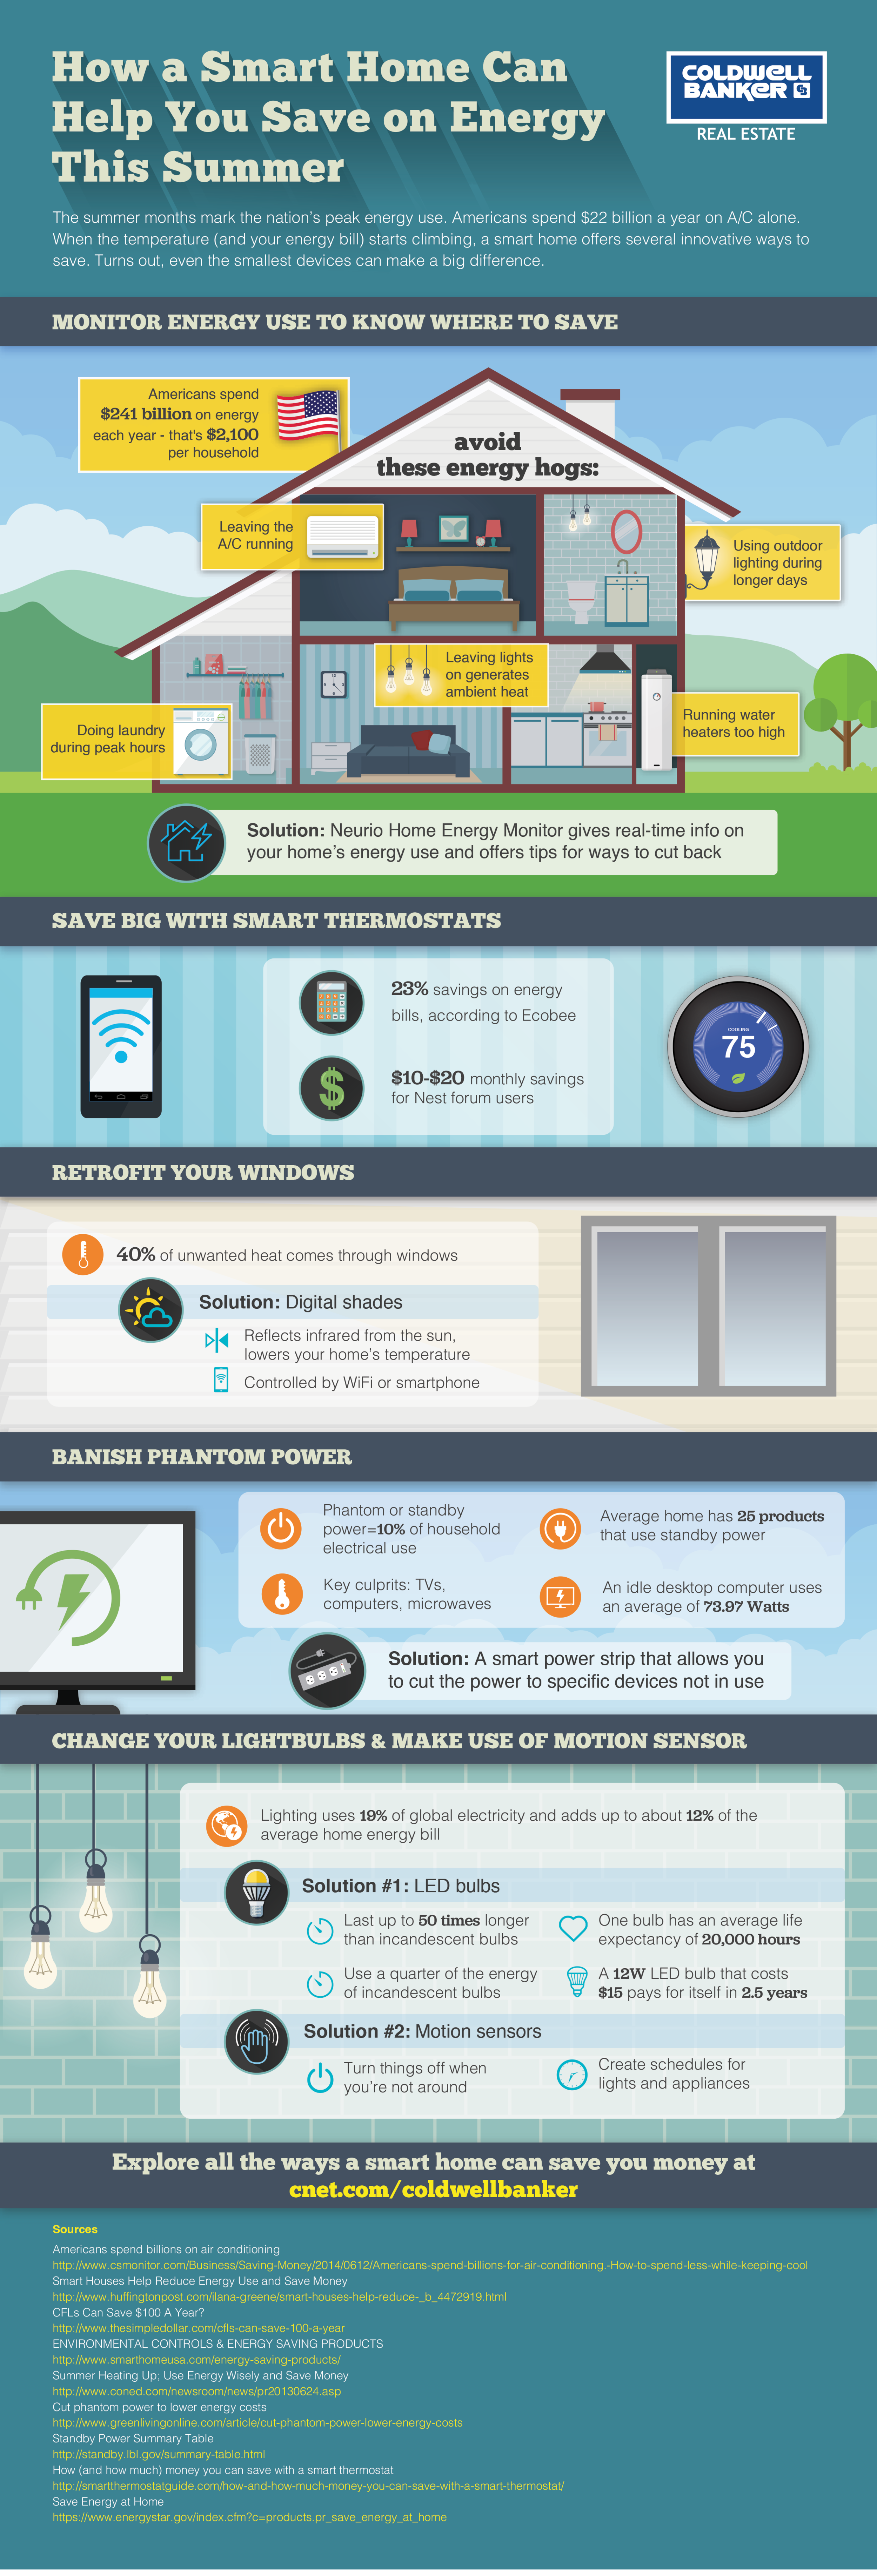 CNET_Coldwell_Banker_Infographic#3_PORTFOLIO.png